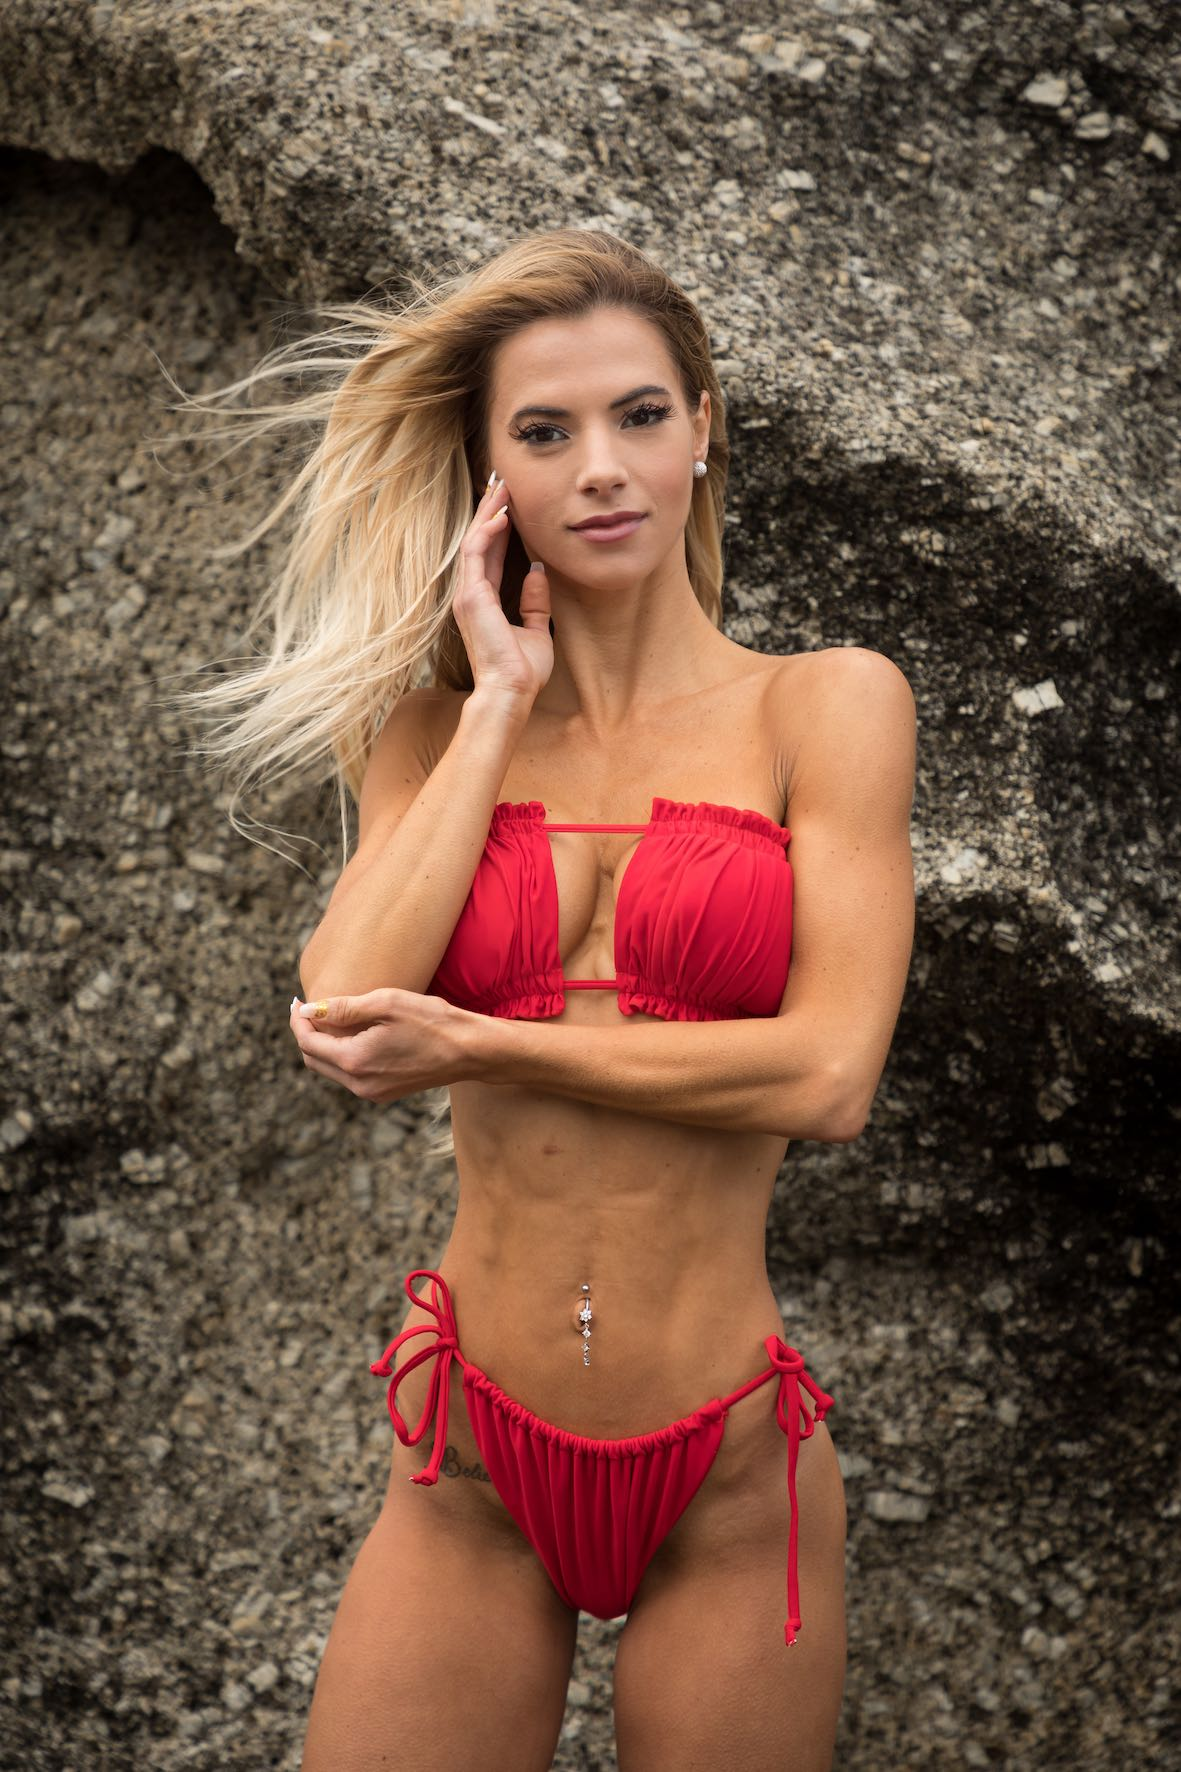 Our South African Babes feature with Melissa CynthiaRoest